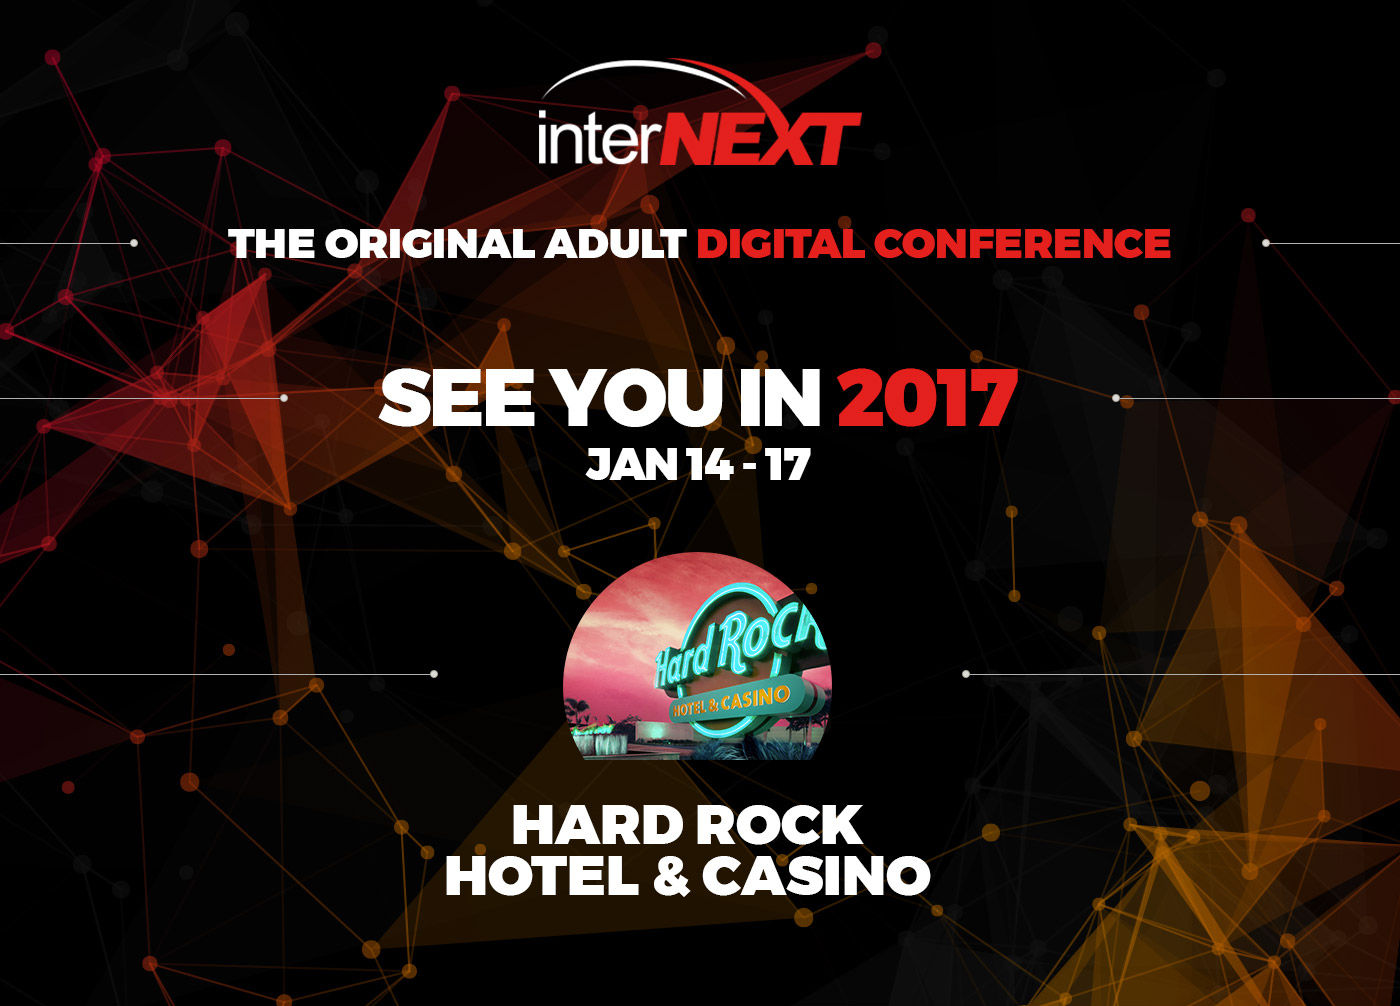 Internext expo